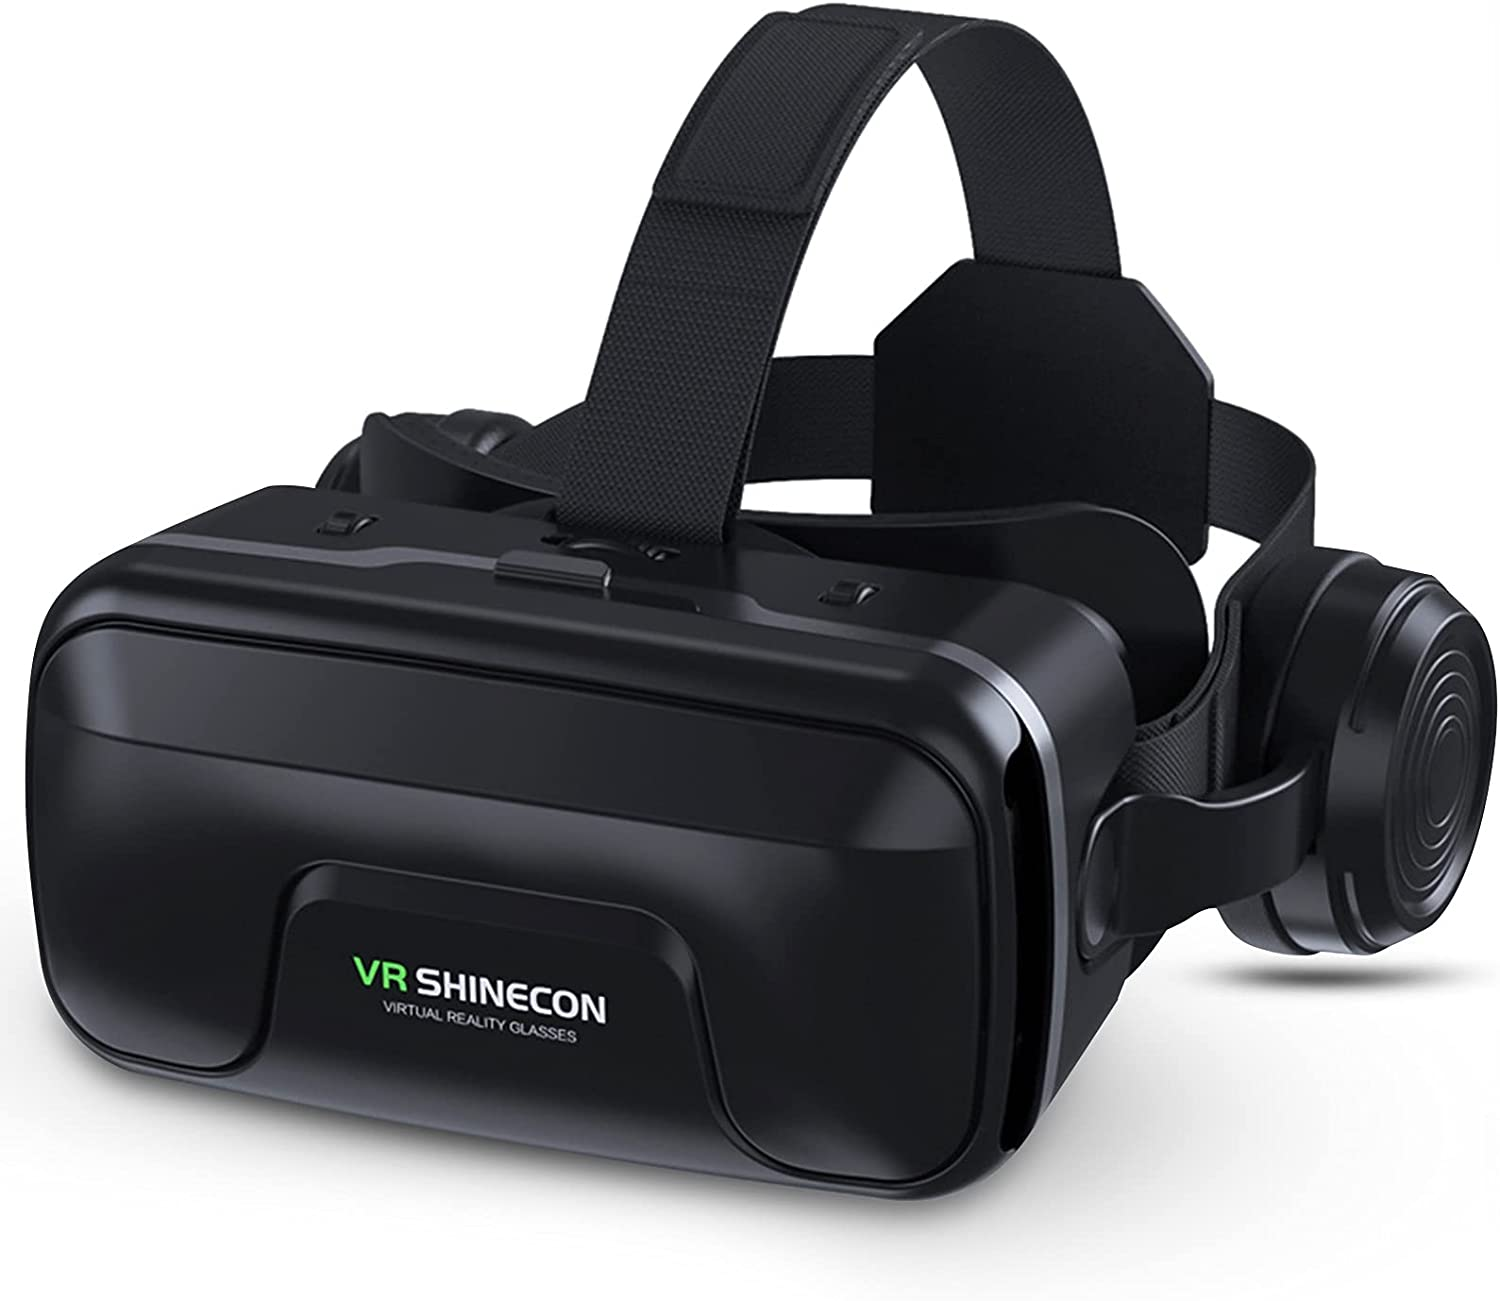 VR Headset, Virtual Reality Headset for 4.7-6.5 Inch iPhone Android Smartphones, 3D VR Goggles Glasses, 120° FOV Eye Protection Comfortable, with Stereo Headphones